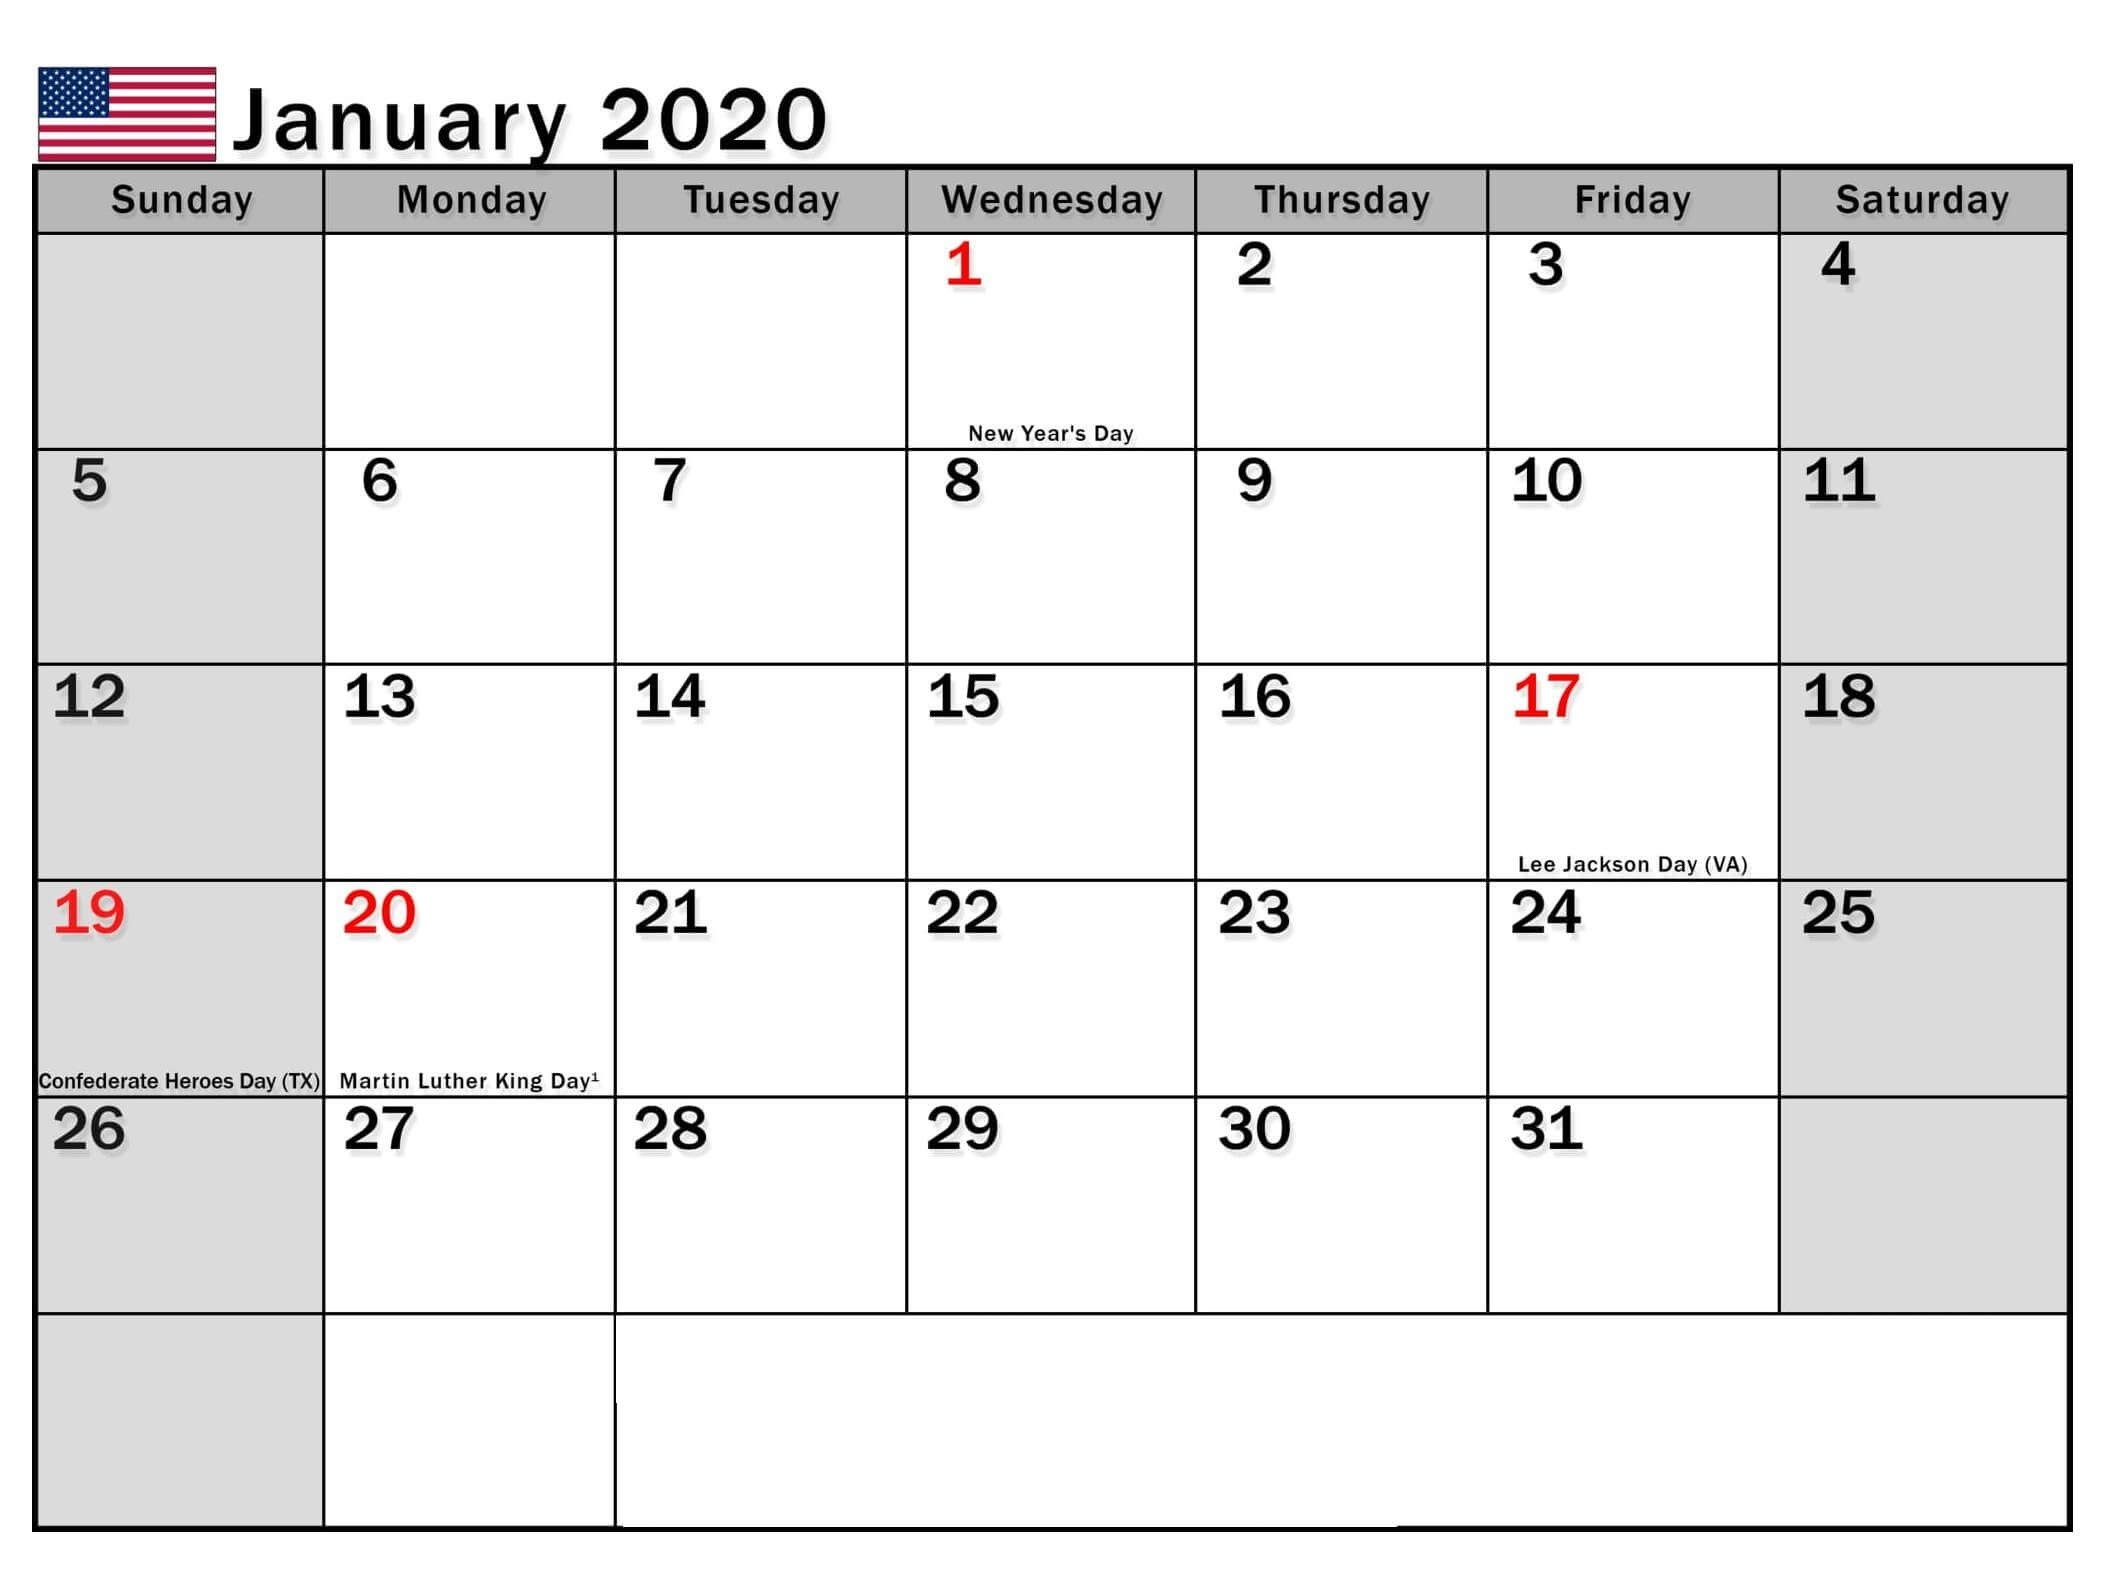 January 2020 Calendar Usa With Bank Holidays - 2019-2020 Calendar With Usa Legal Holidays